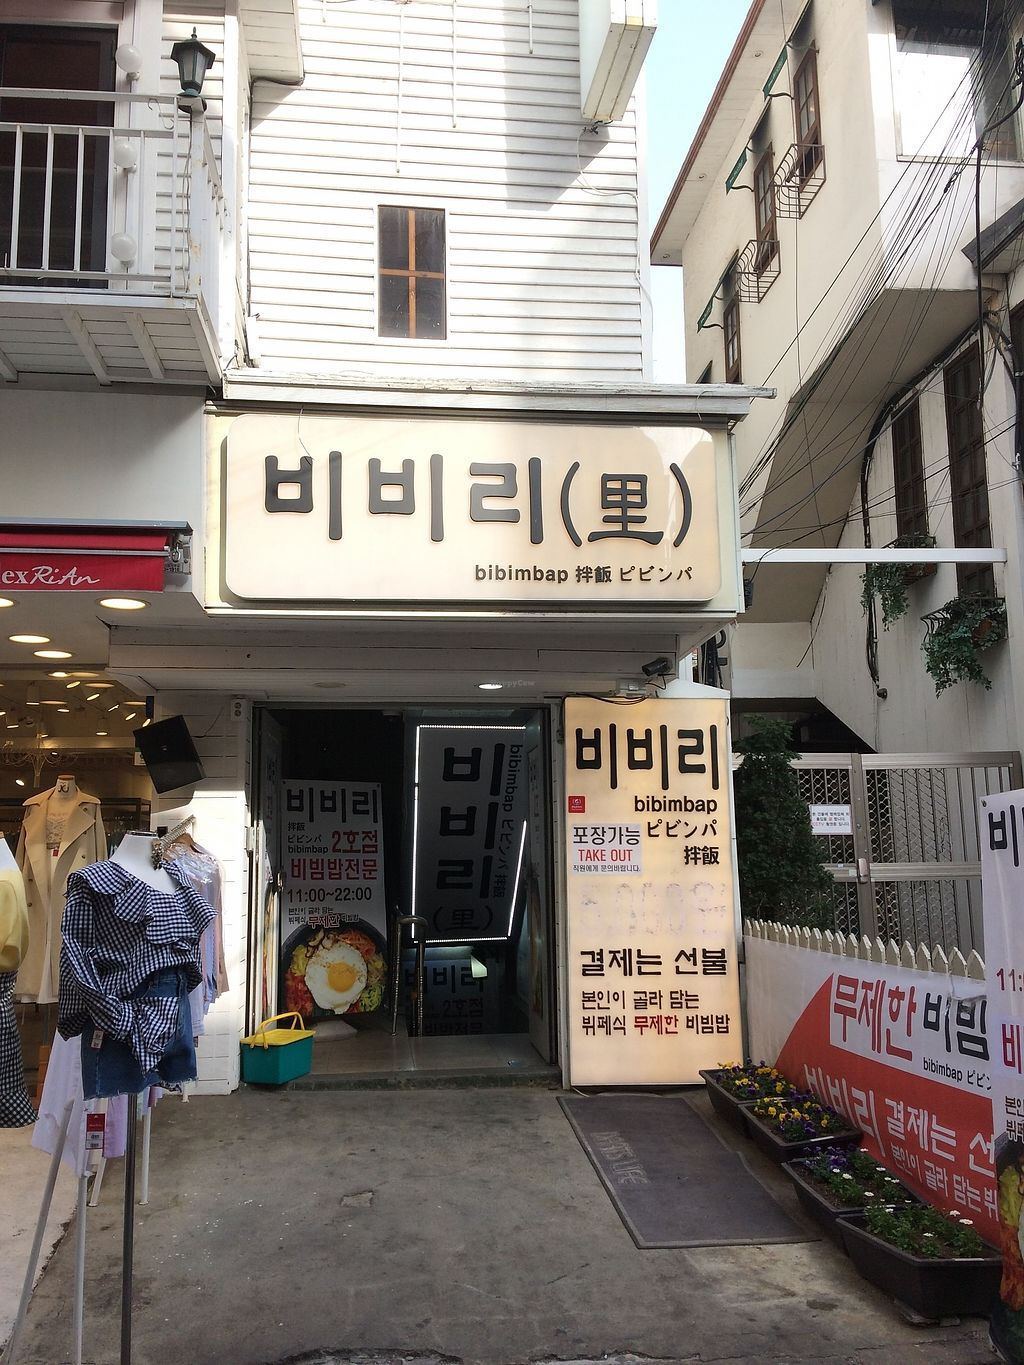 """Photo of Bibiri 2 - 비비리2  by <a href=""""/members/profile/ninacomoneche"""">ninacomoneche</a> <br/>This is the front of the building. There are only Korean characters, so you cannot look for the name """"Bibiri"""" <br/> March 29, 2018  - <a href='/contact/abuse/image/114638/377803'>Report</a>"""